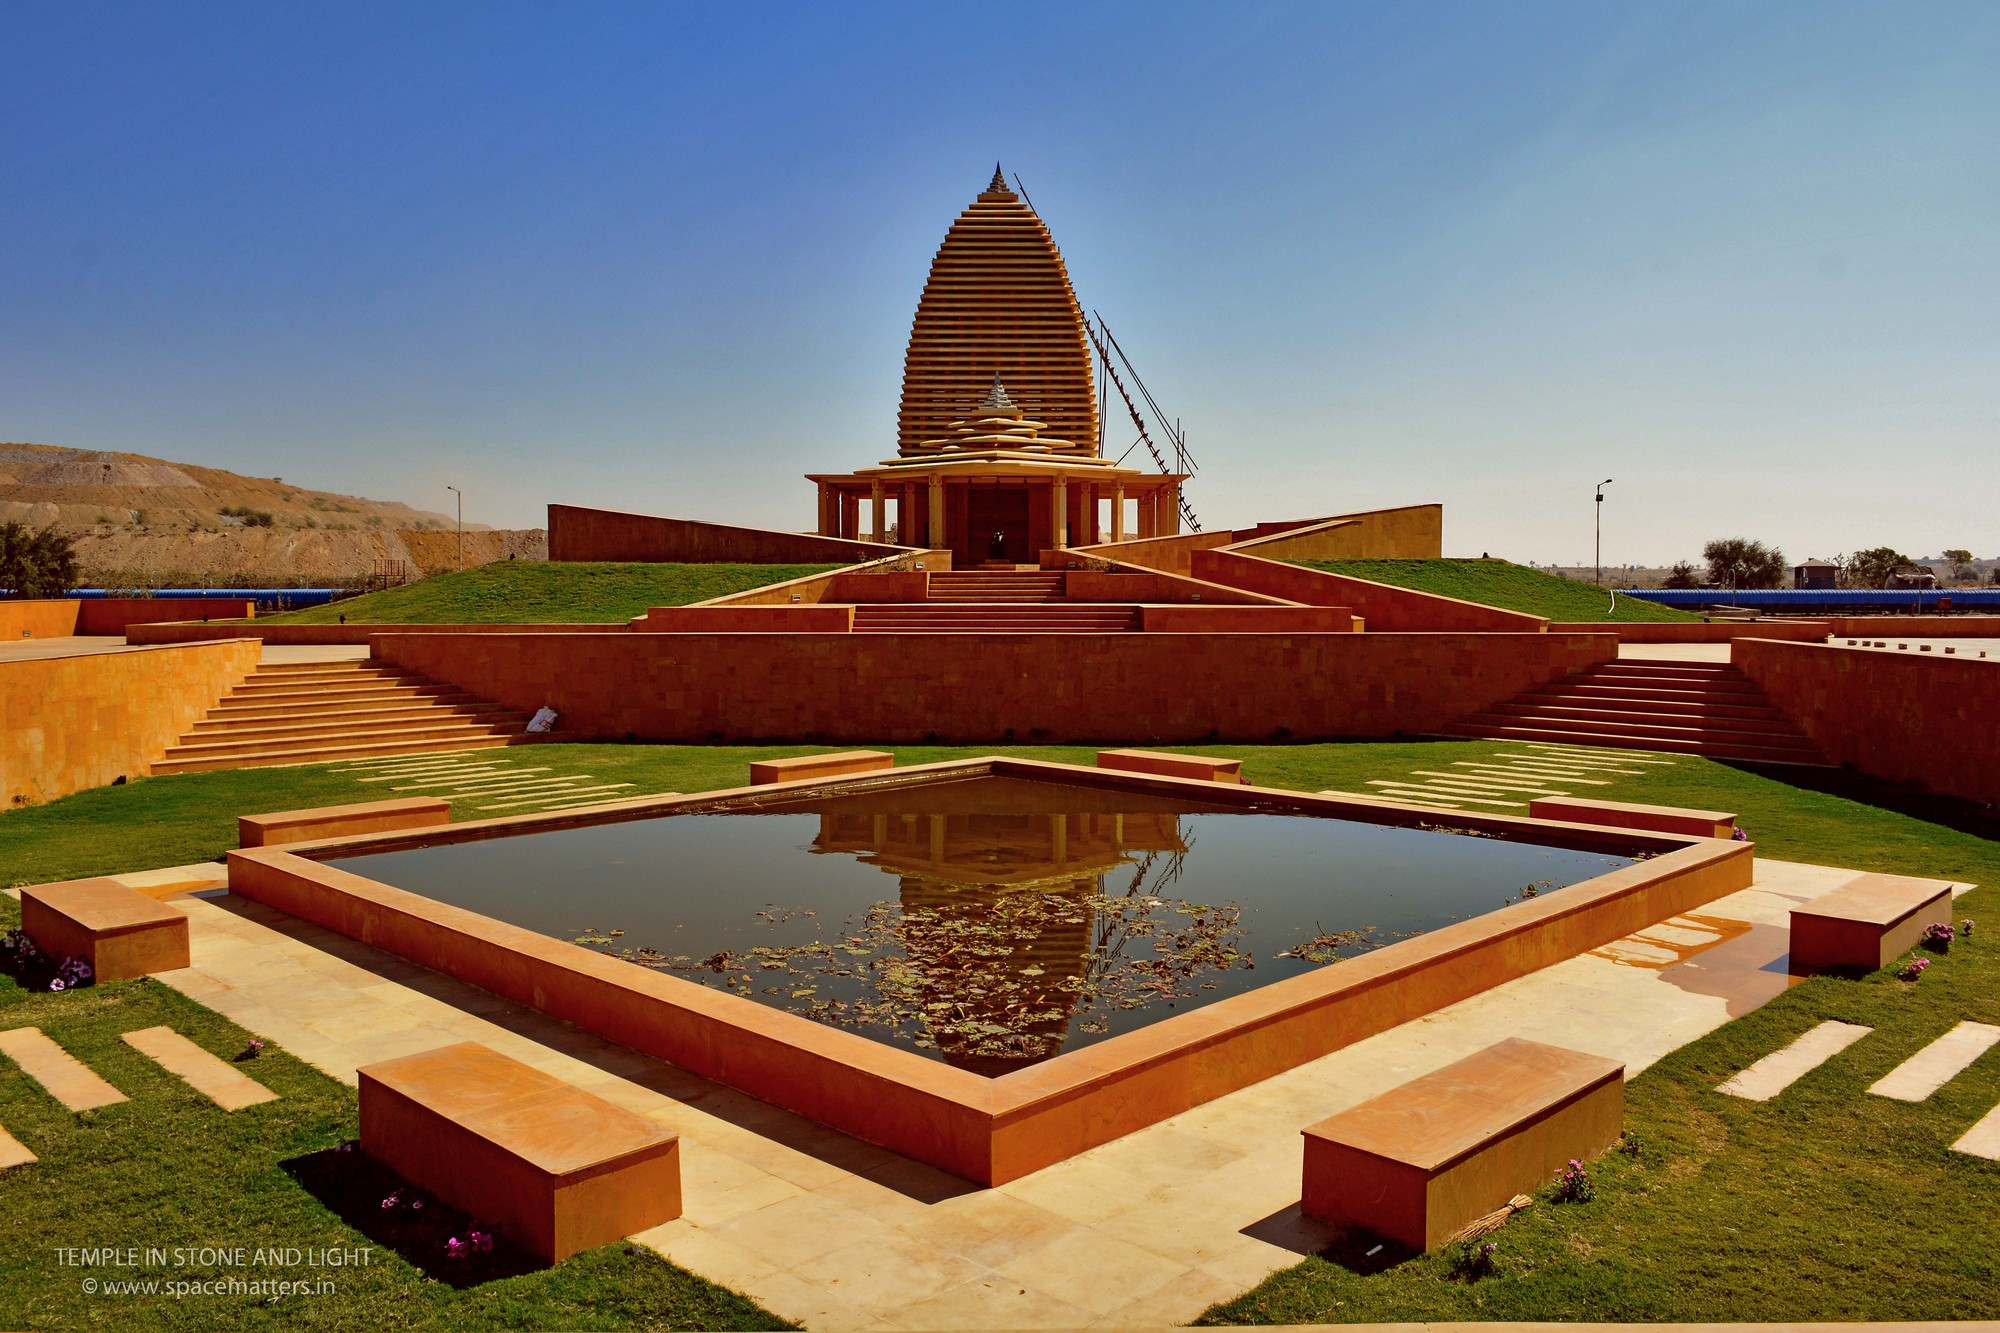 Temple in Stone and Light / SpaceMatters | ArchDaily